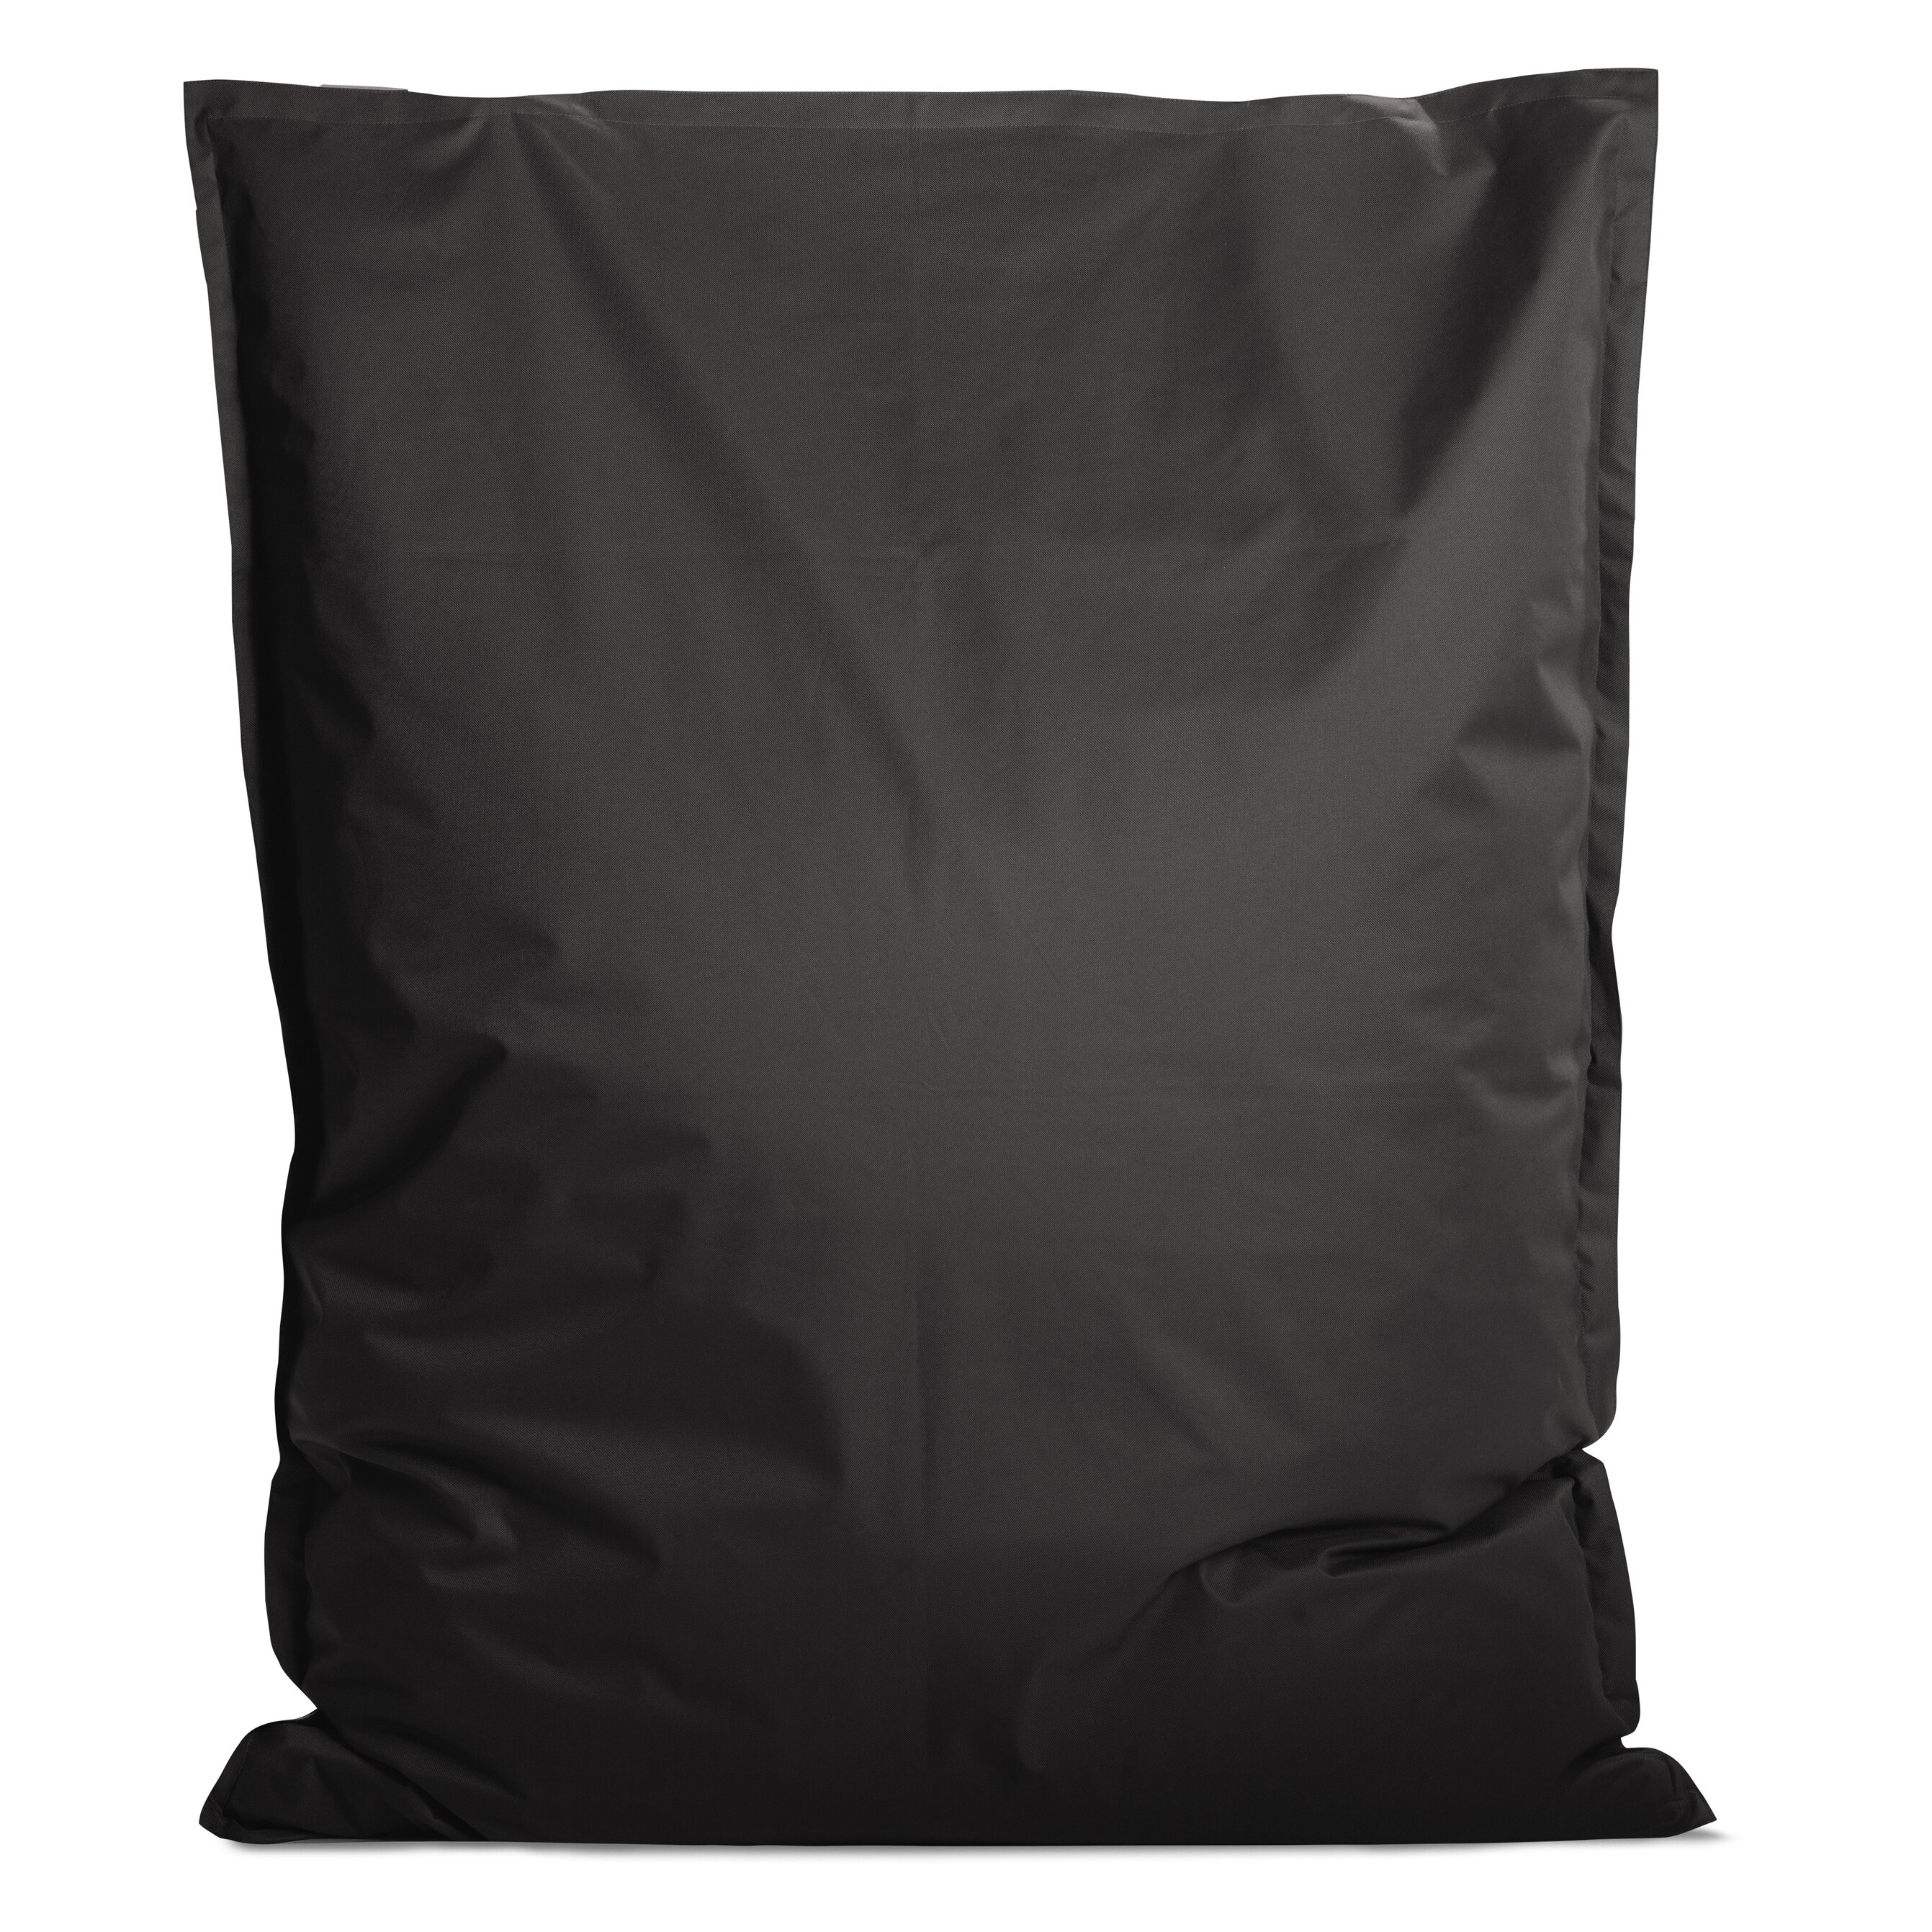 sittingpoint pop art bean bag chair wayfair. Black Bedroom Furniture Sets. Home Design Ideas